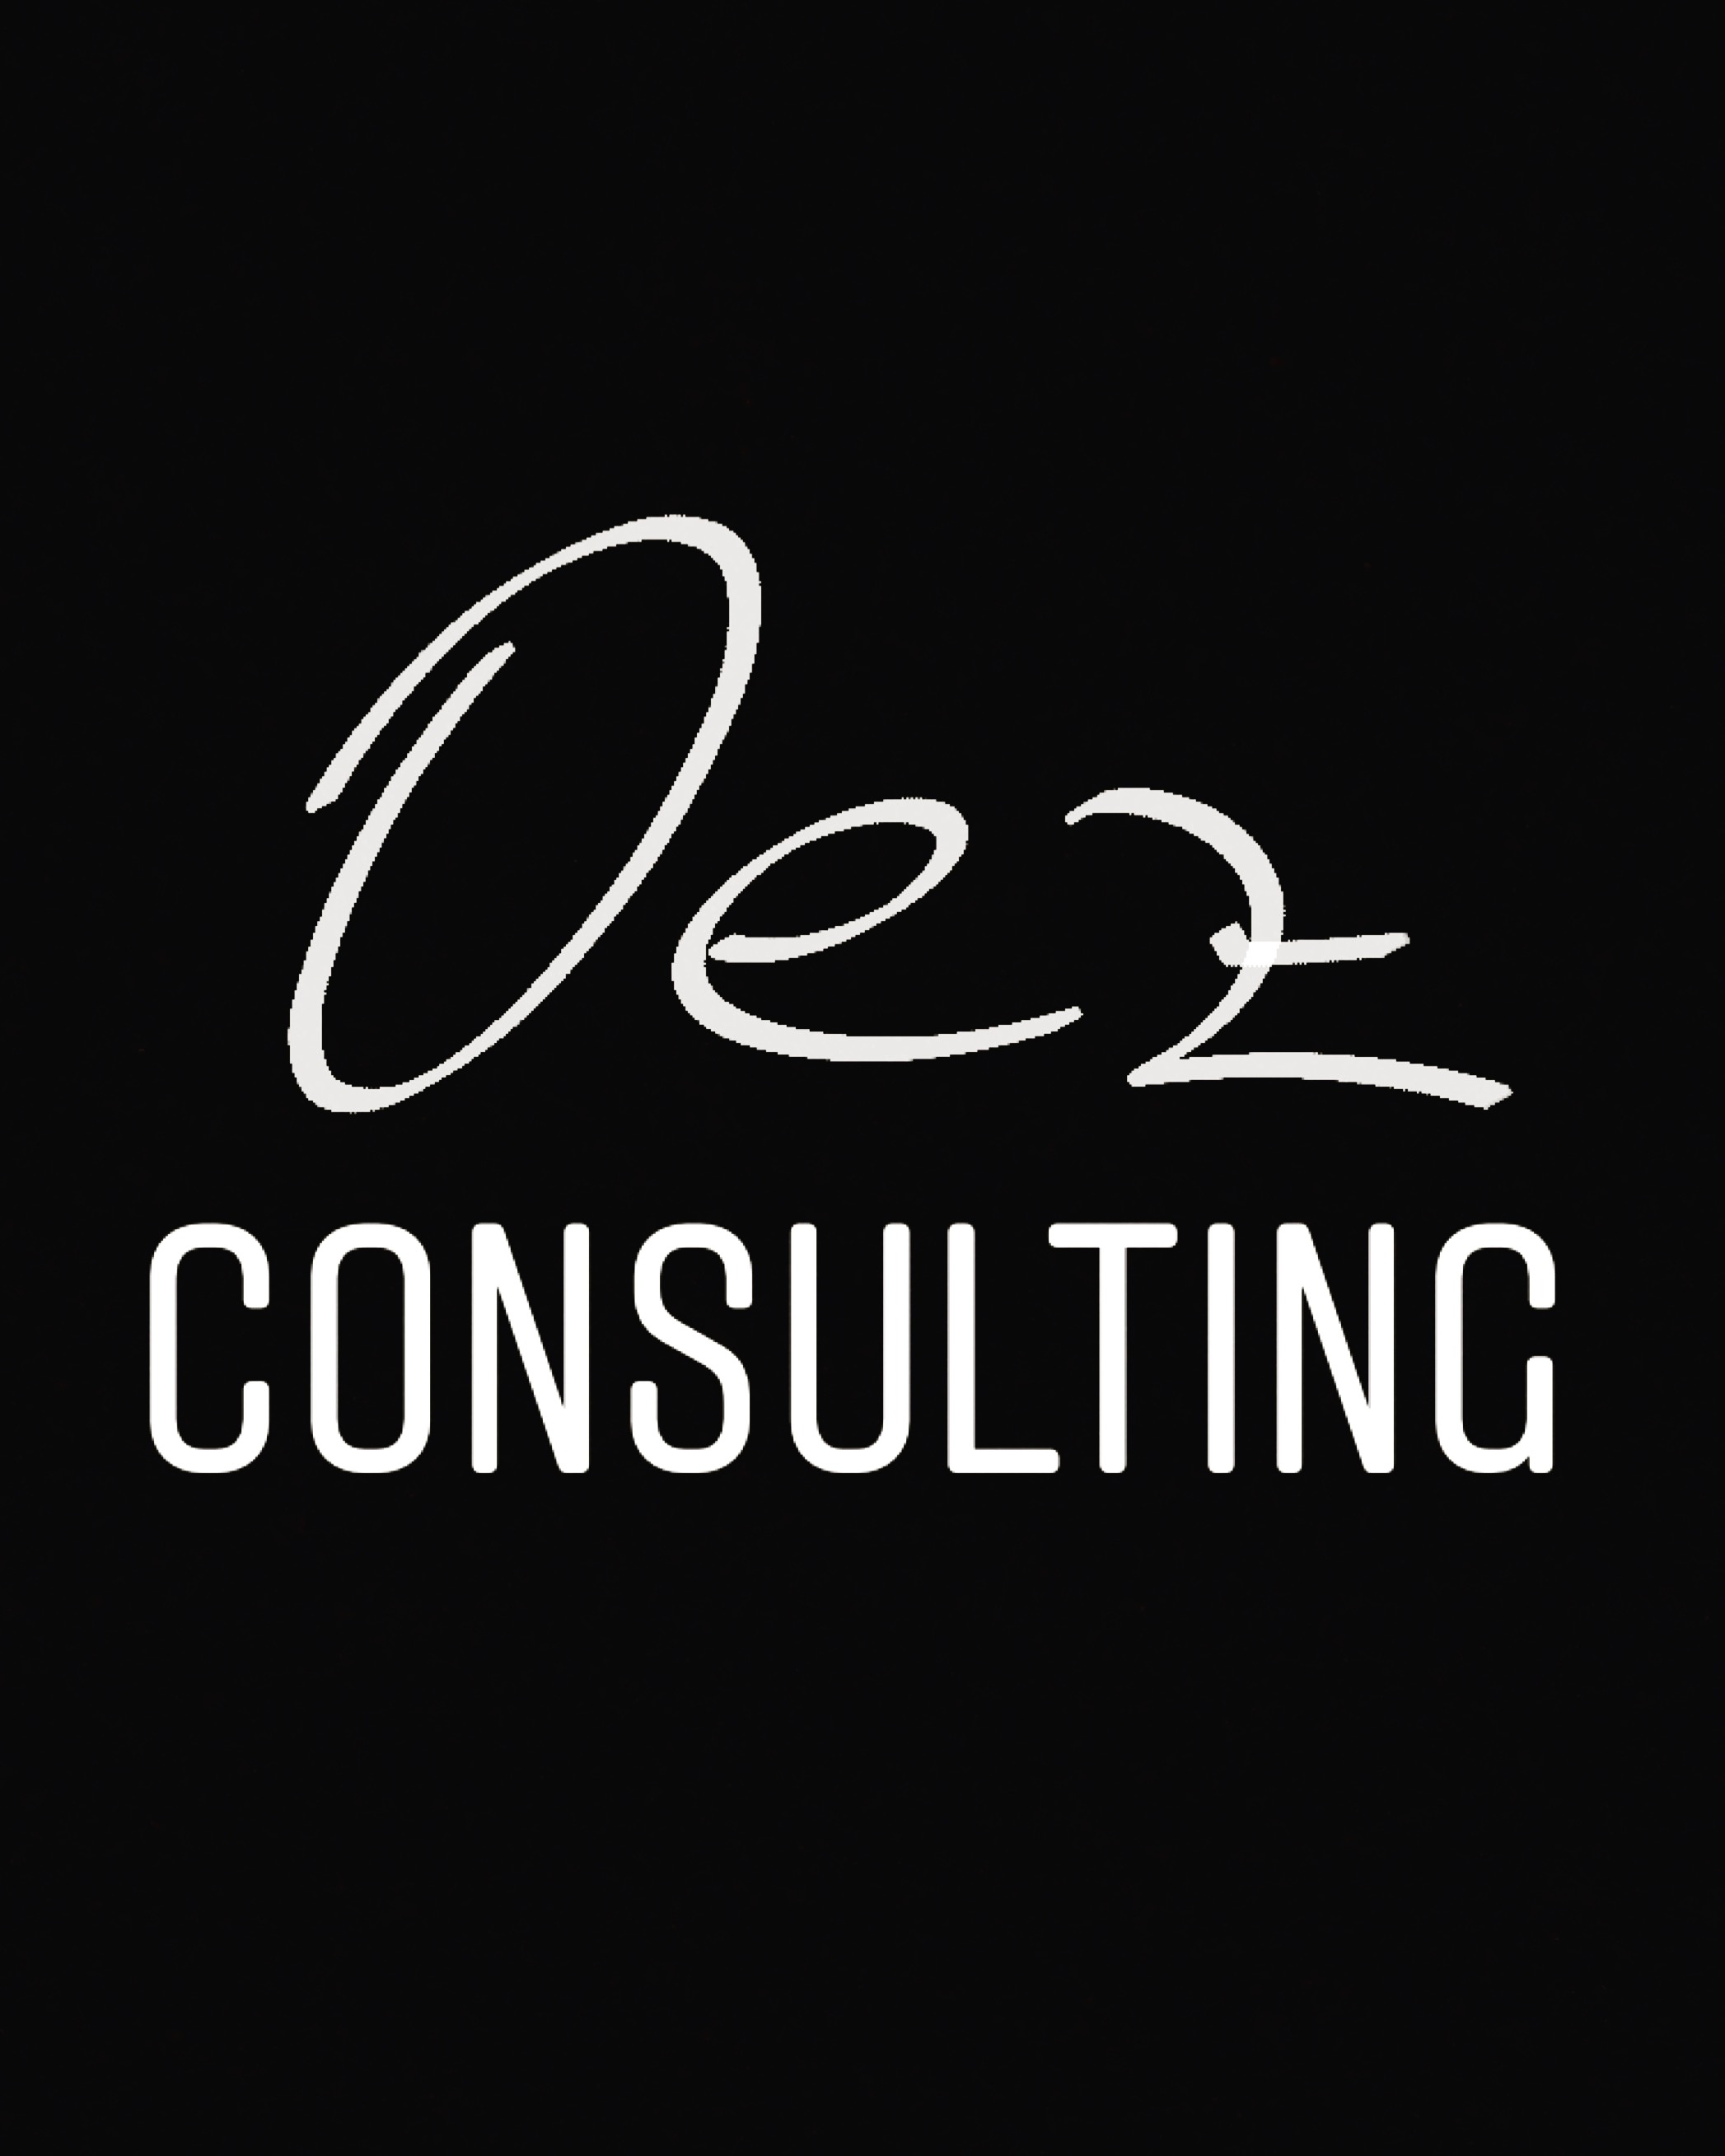 Oezcine Consulting